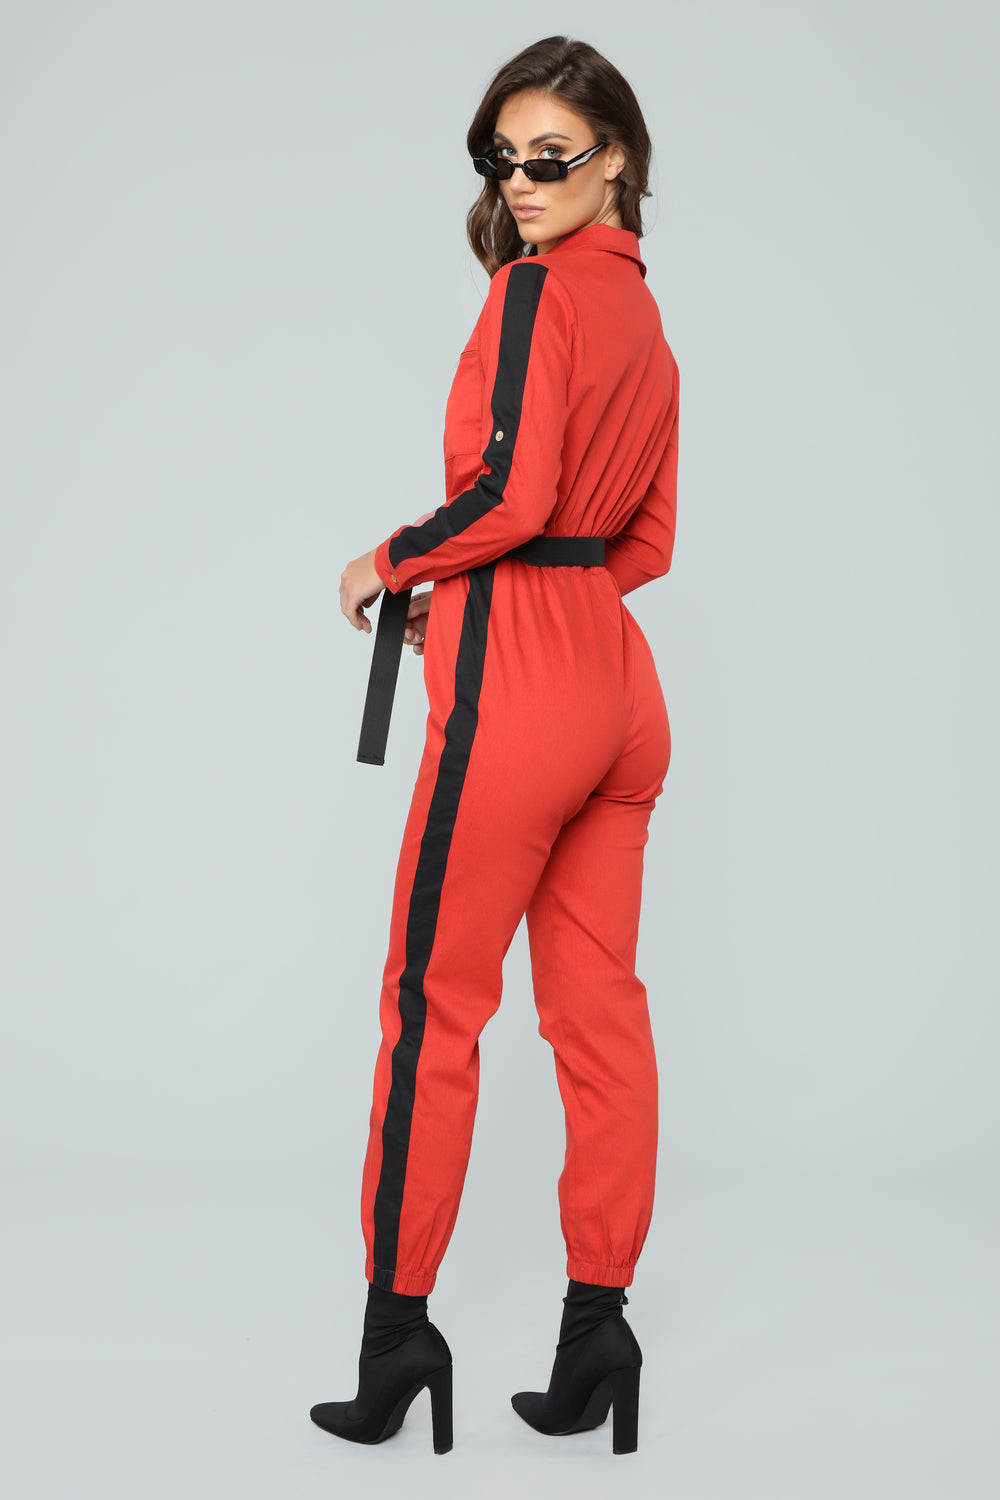 Out Of This Nova Jumpsuit - Red